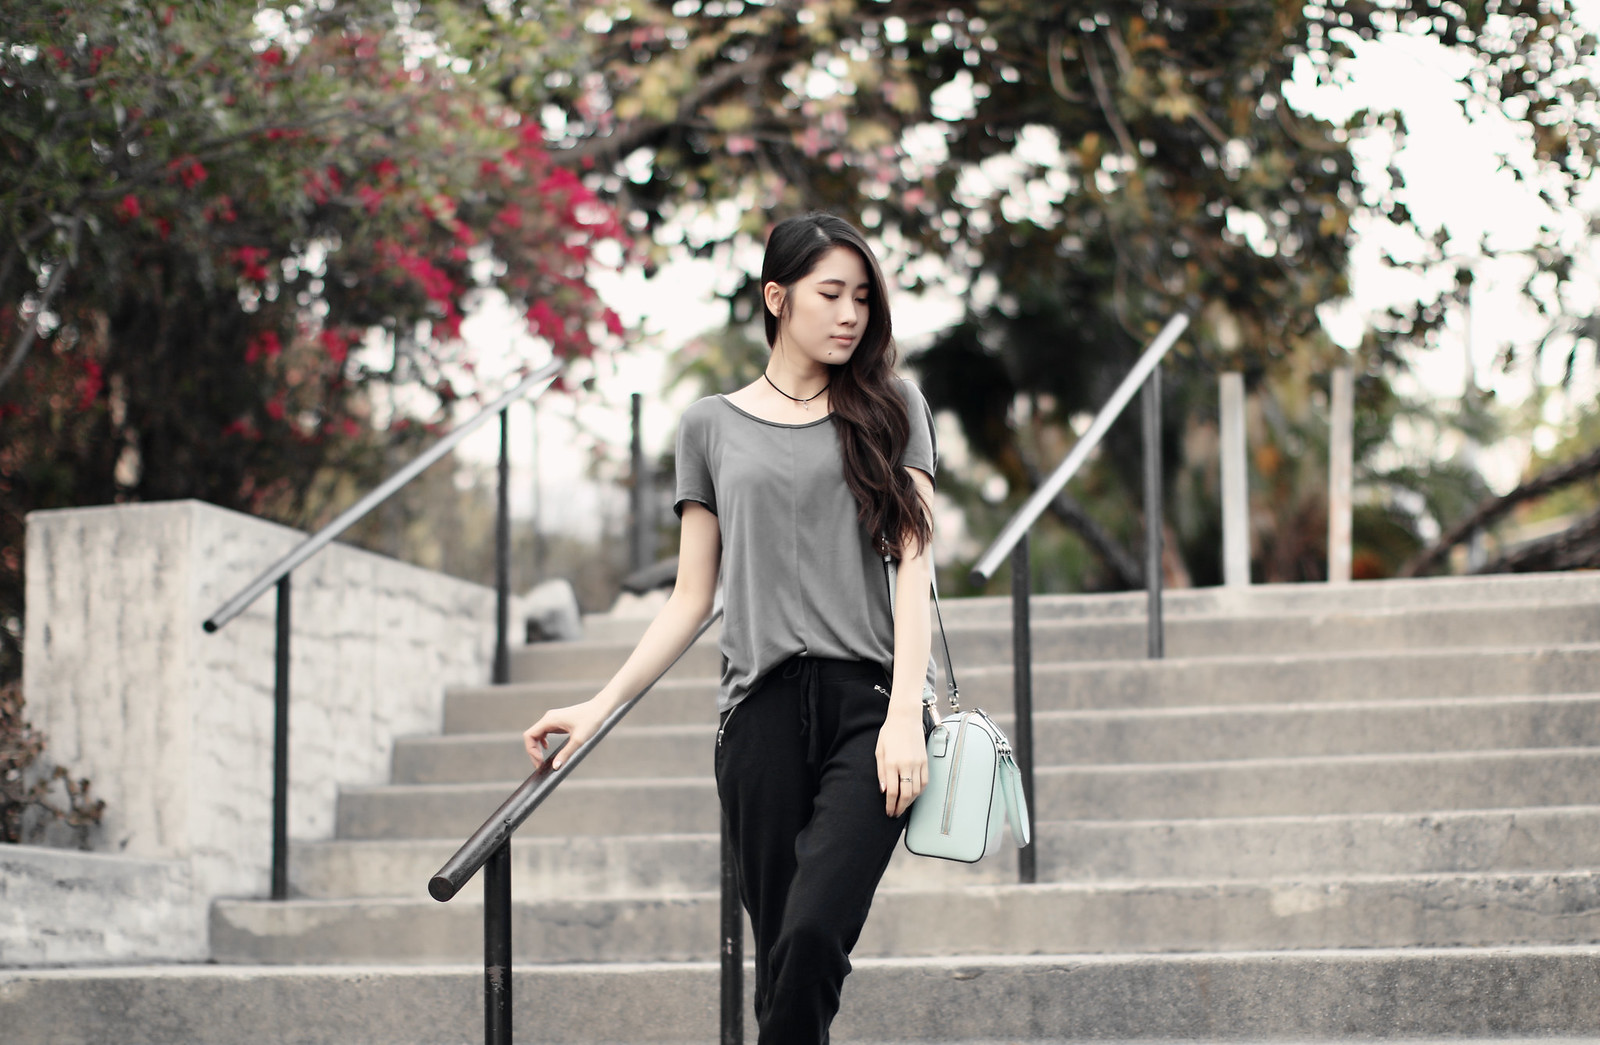 1232-clothestoyouuu-ootd-fashion-sportychic-athleisure-criss-cross-draped-back-tee-abercrombie-hollister